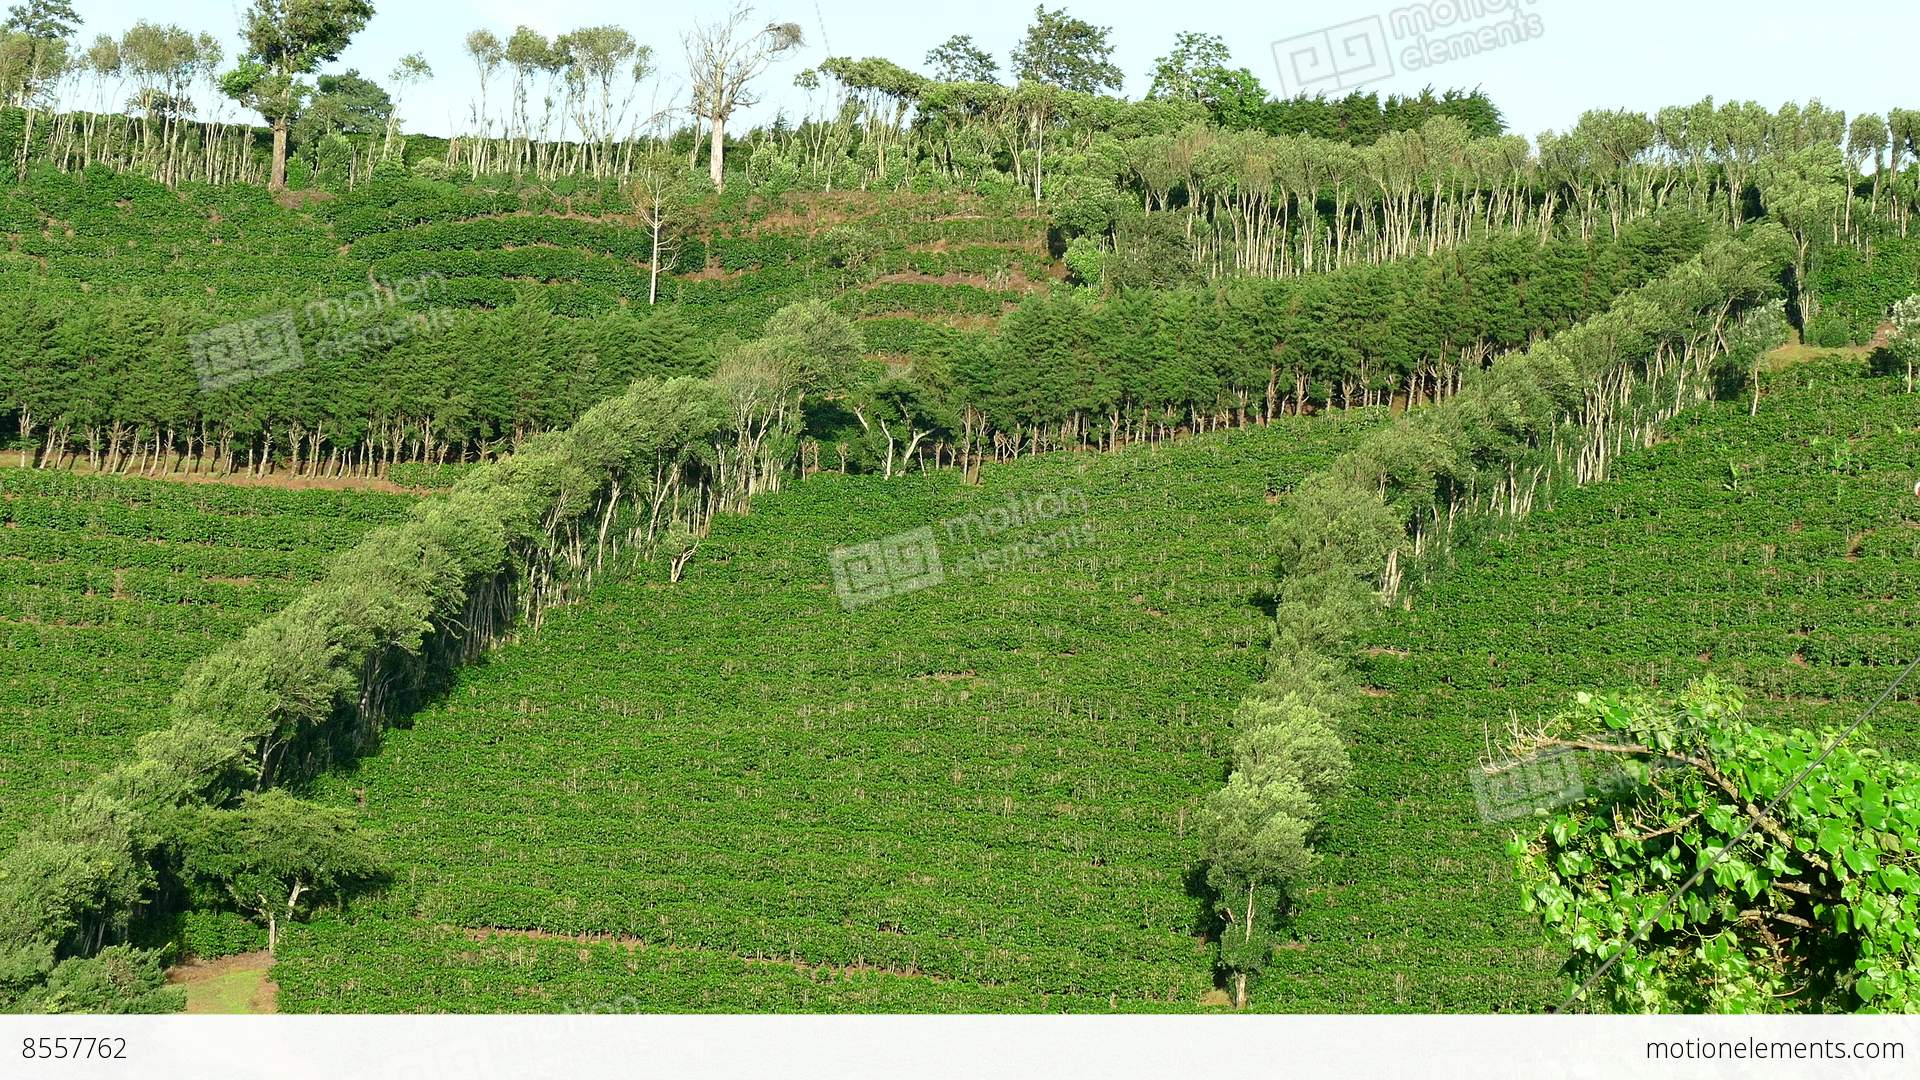 Agriculture in Brazil